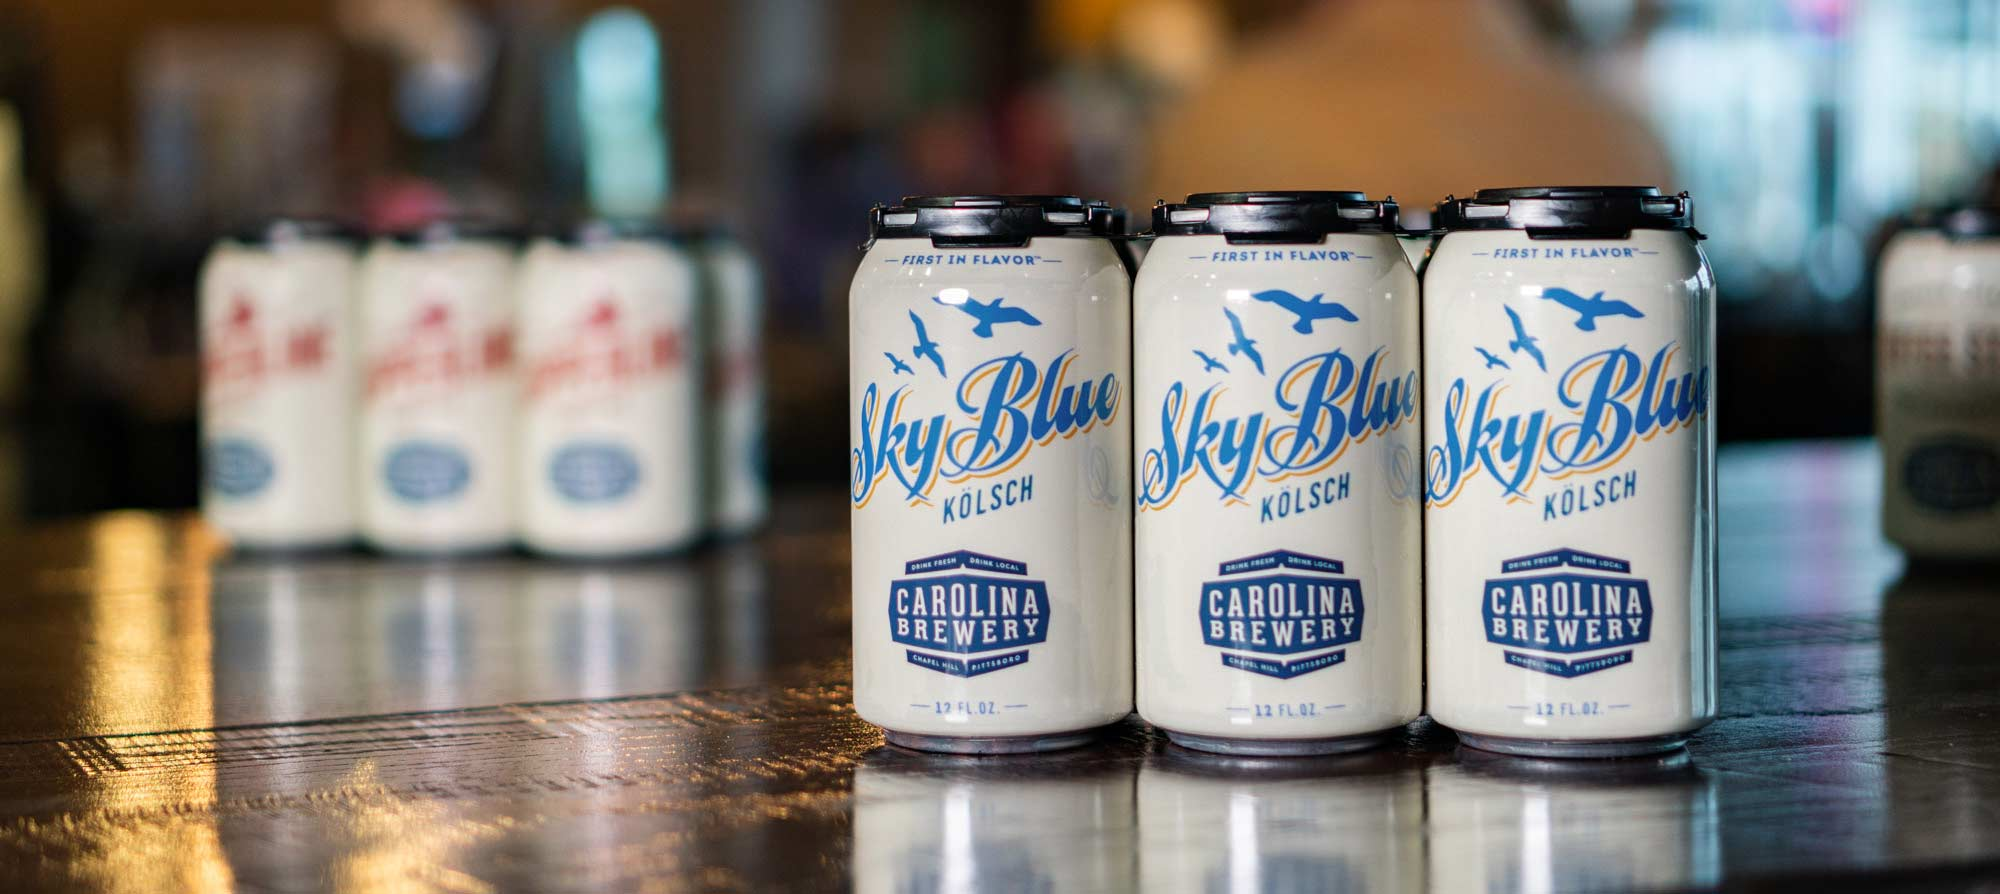 Craft-Beer-Branding_Carolina-Brewery-Sky-Blue-Can.jpg